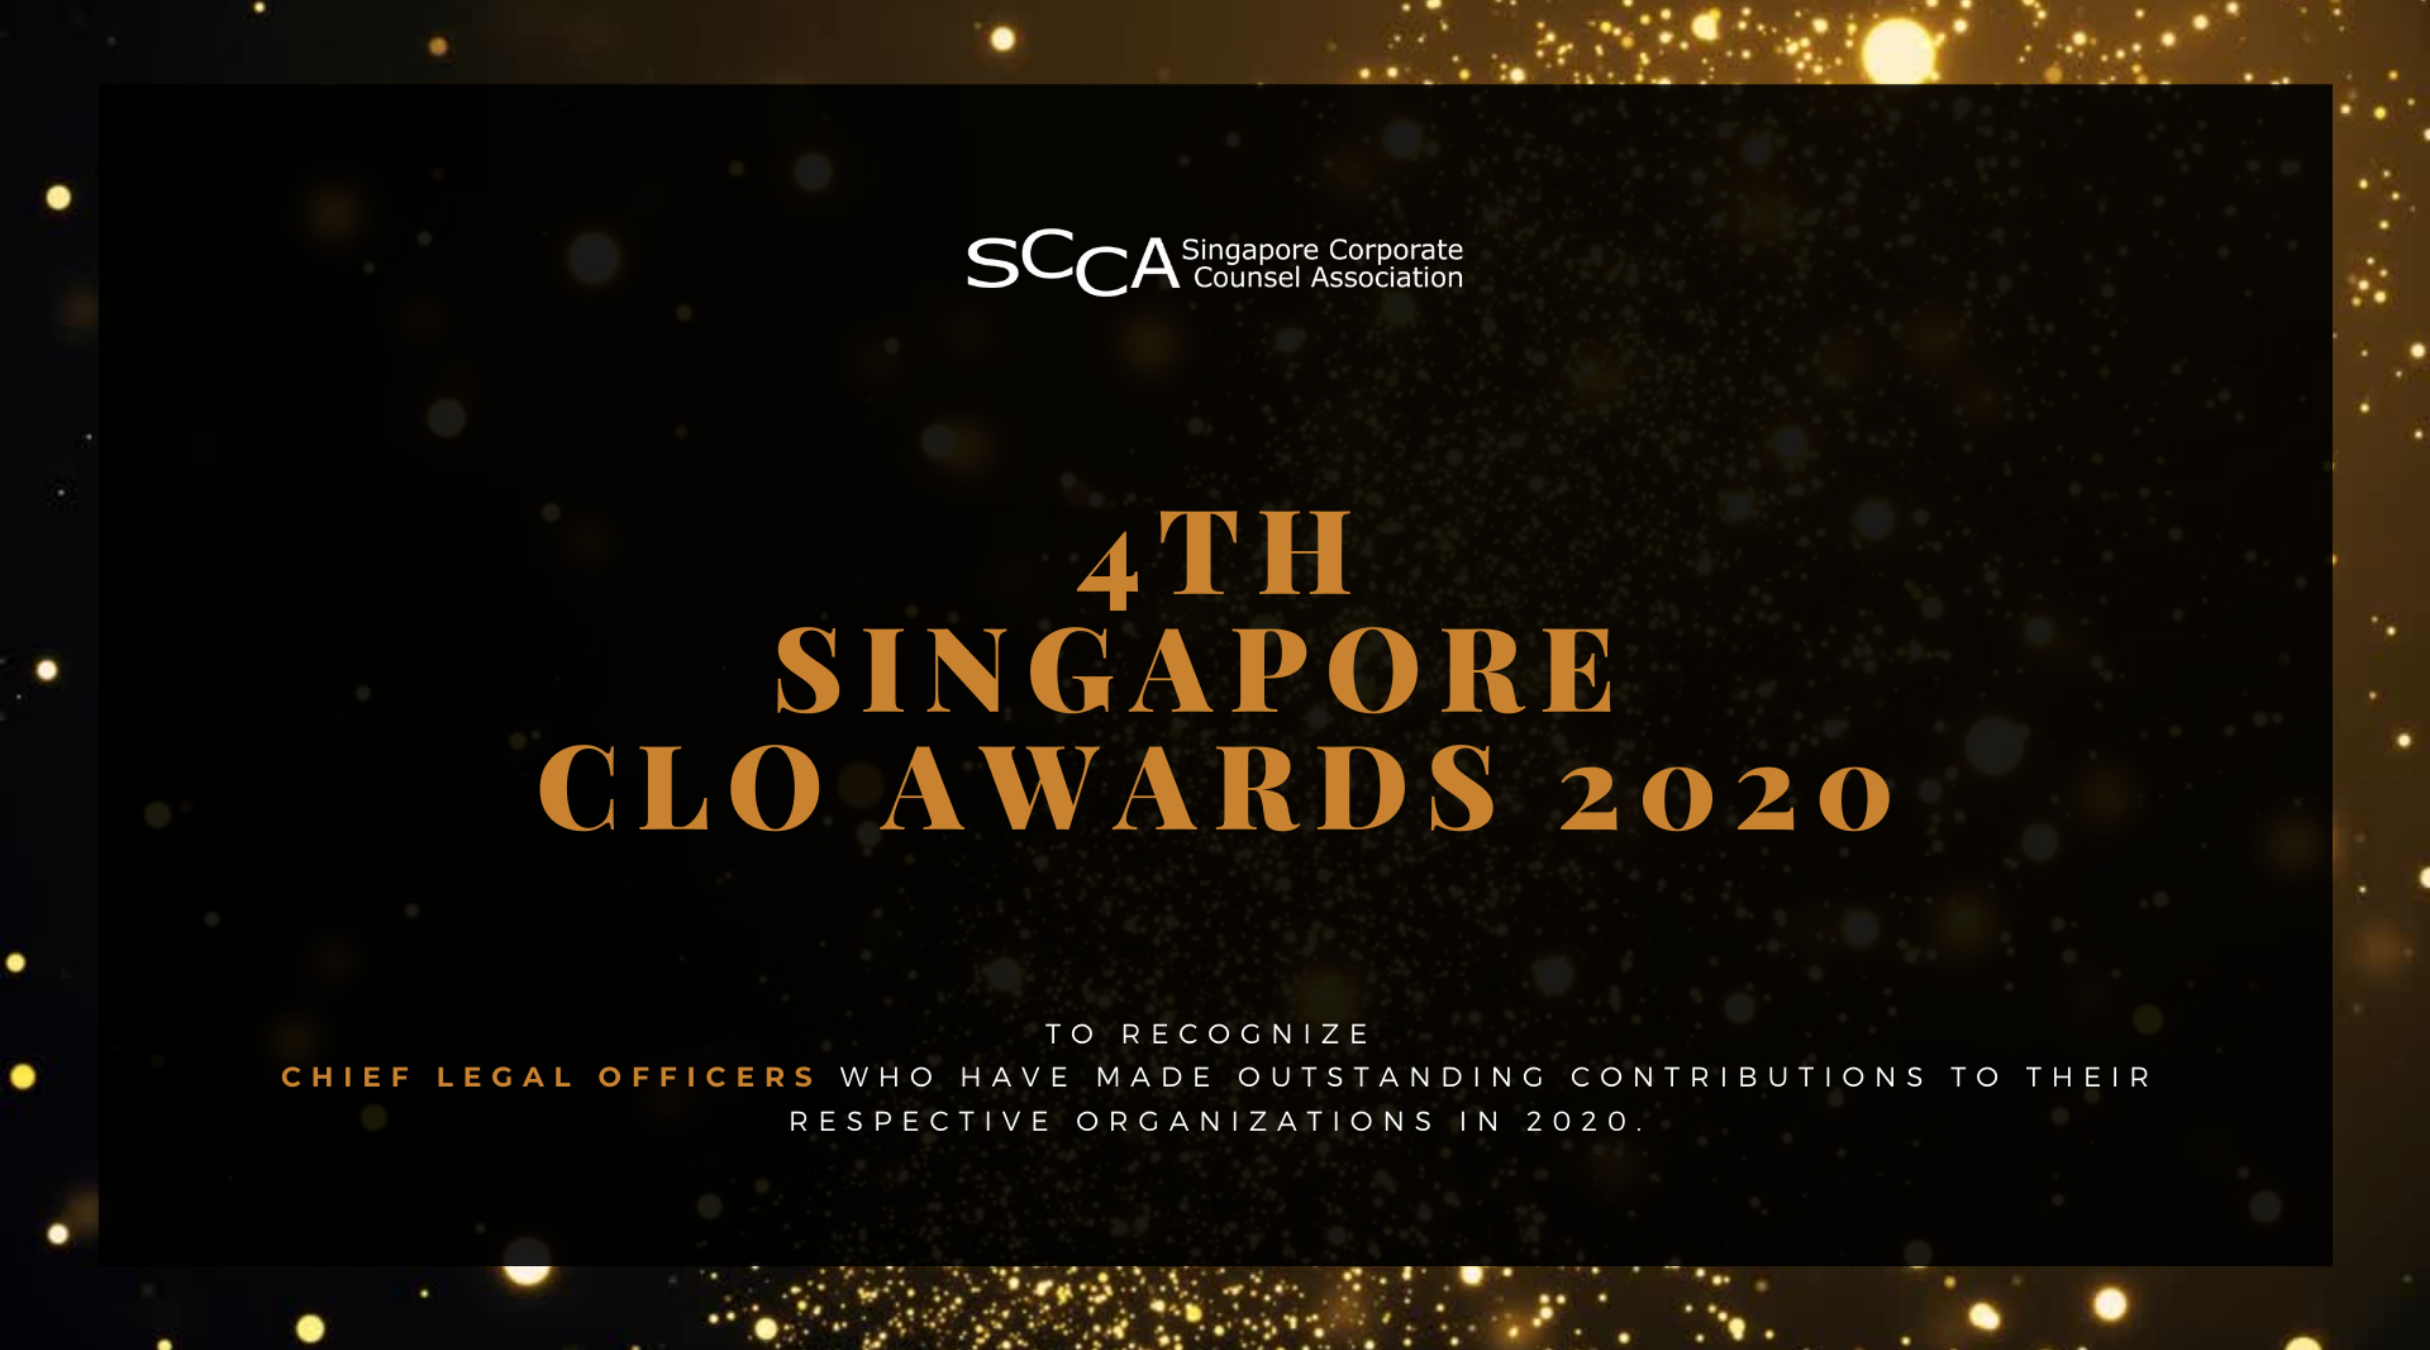 4th Singapore Chief Legal Officer Awards 2020 - Virtual Ceremony Event